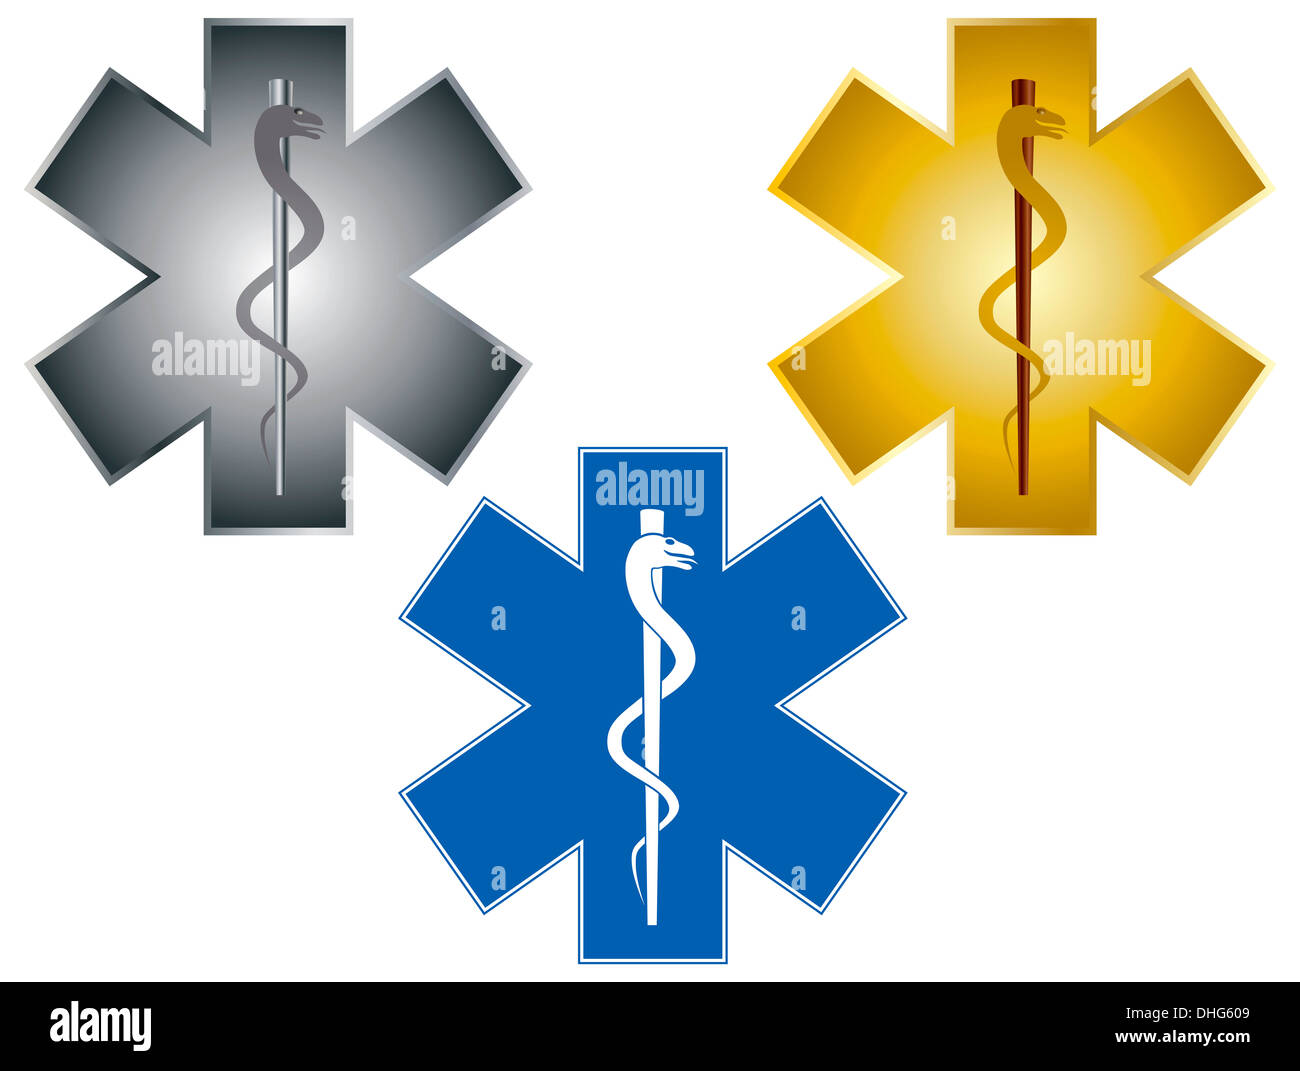 Star Of Life Rod Of Asclepius Medical Symbol For Ambulance Isolated